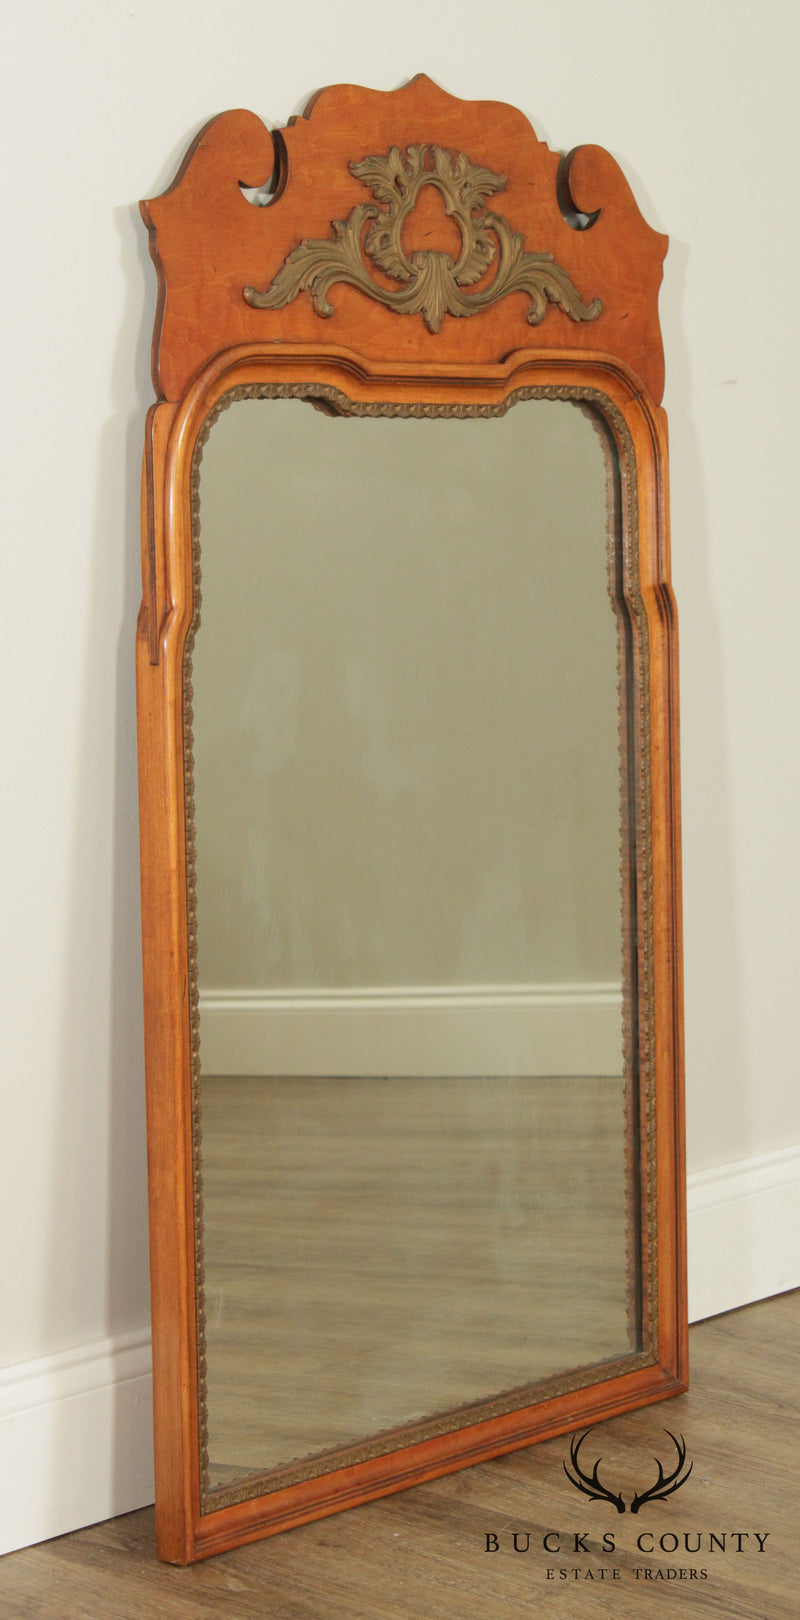 Davis Cabinet Co. Vintage Maple Frame Chippendale Style Wall Mirror